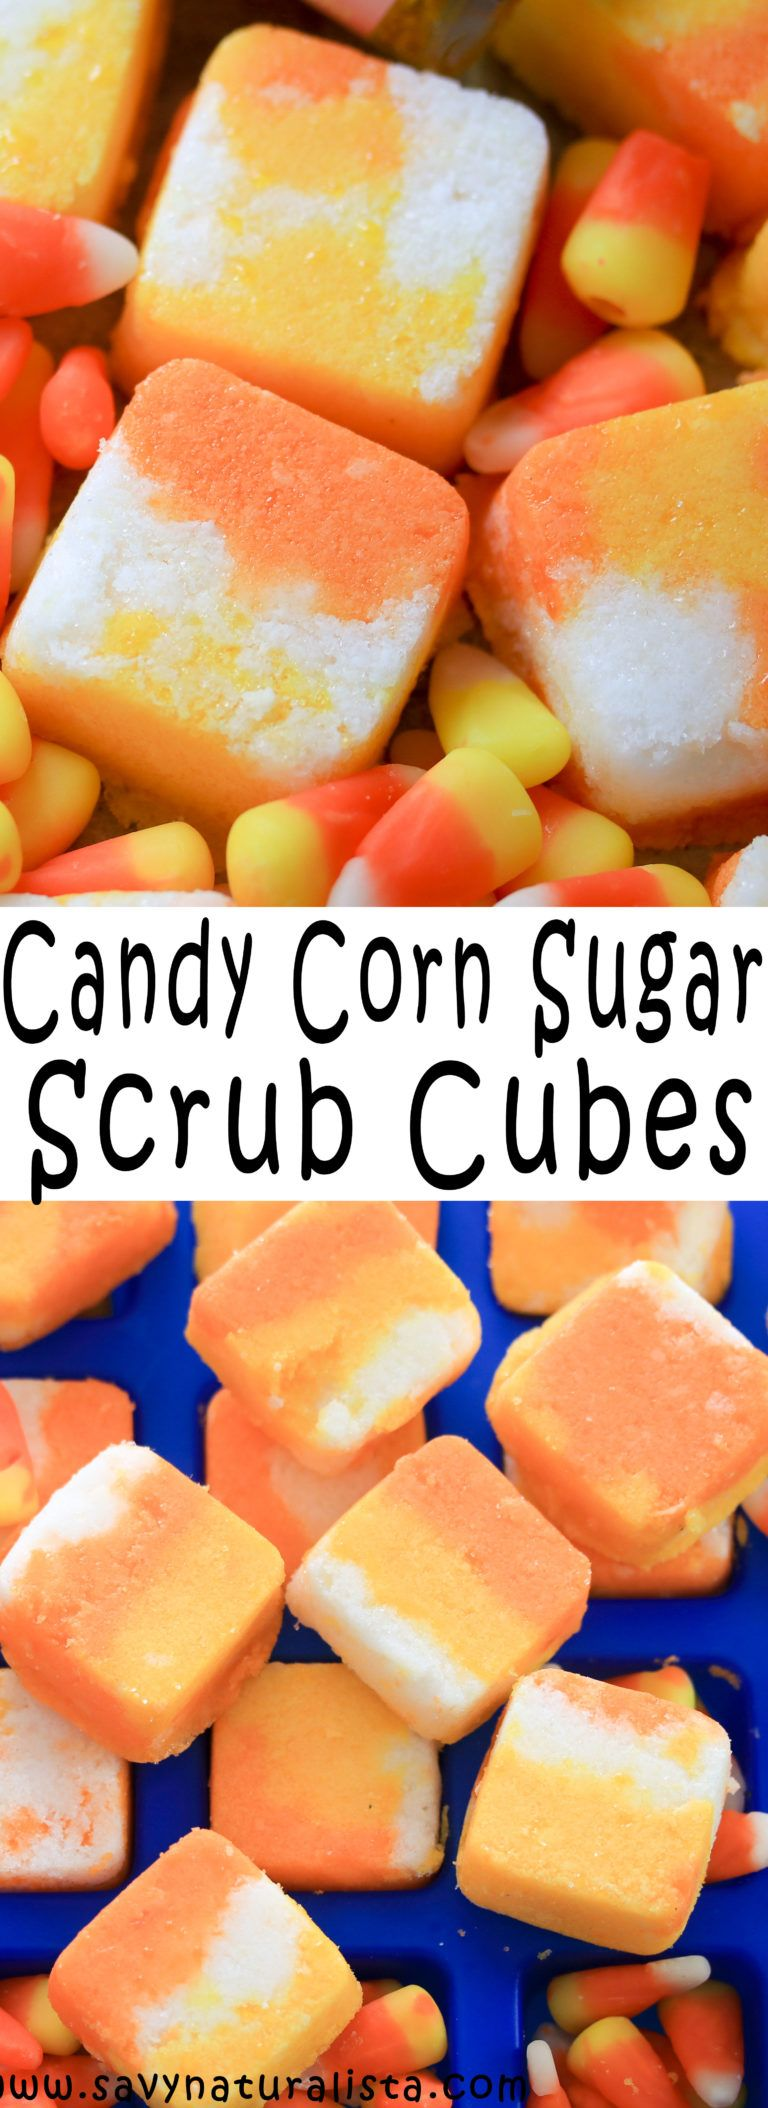 Tis the season to make festive recipes and these Candy Corn Body Scrub Cubes is what you want to try!